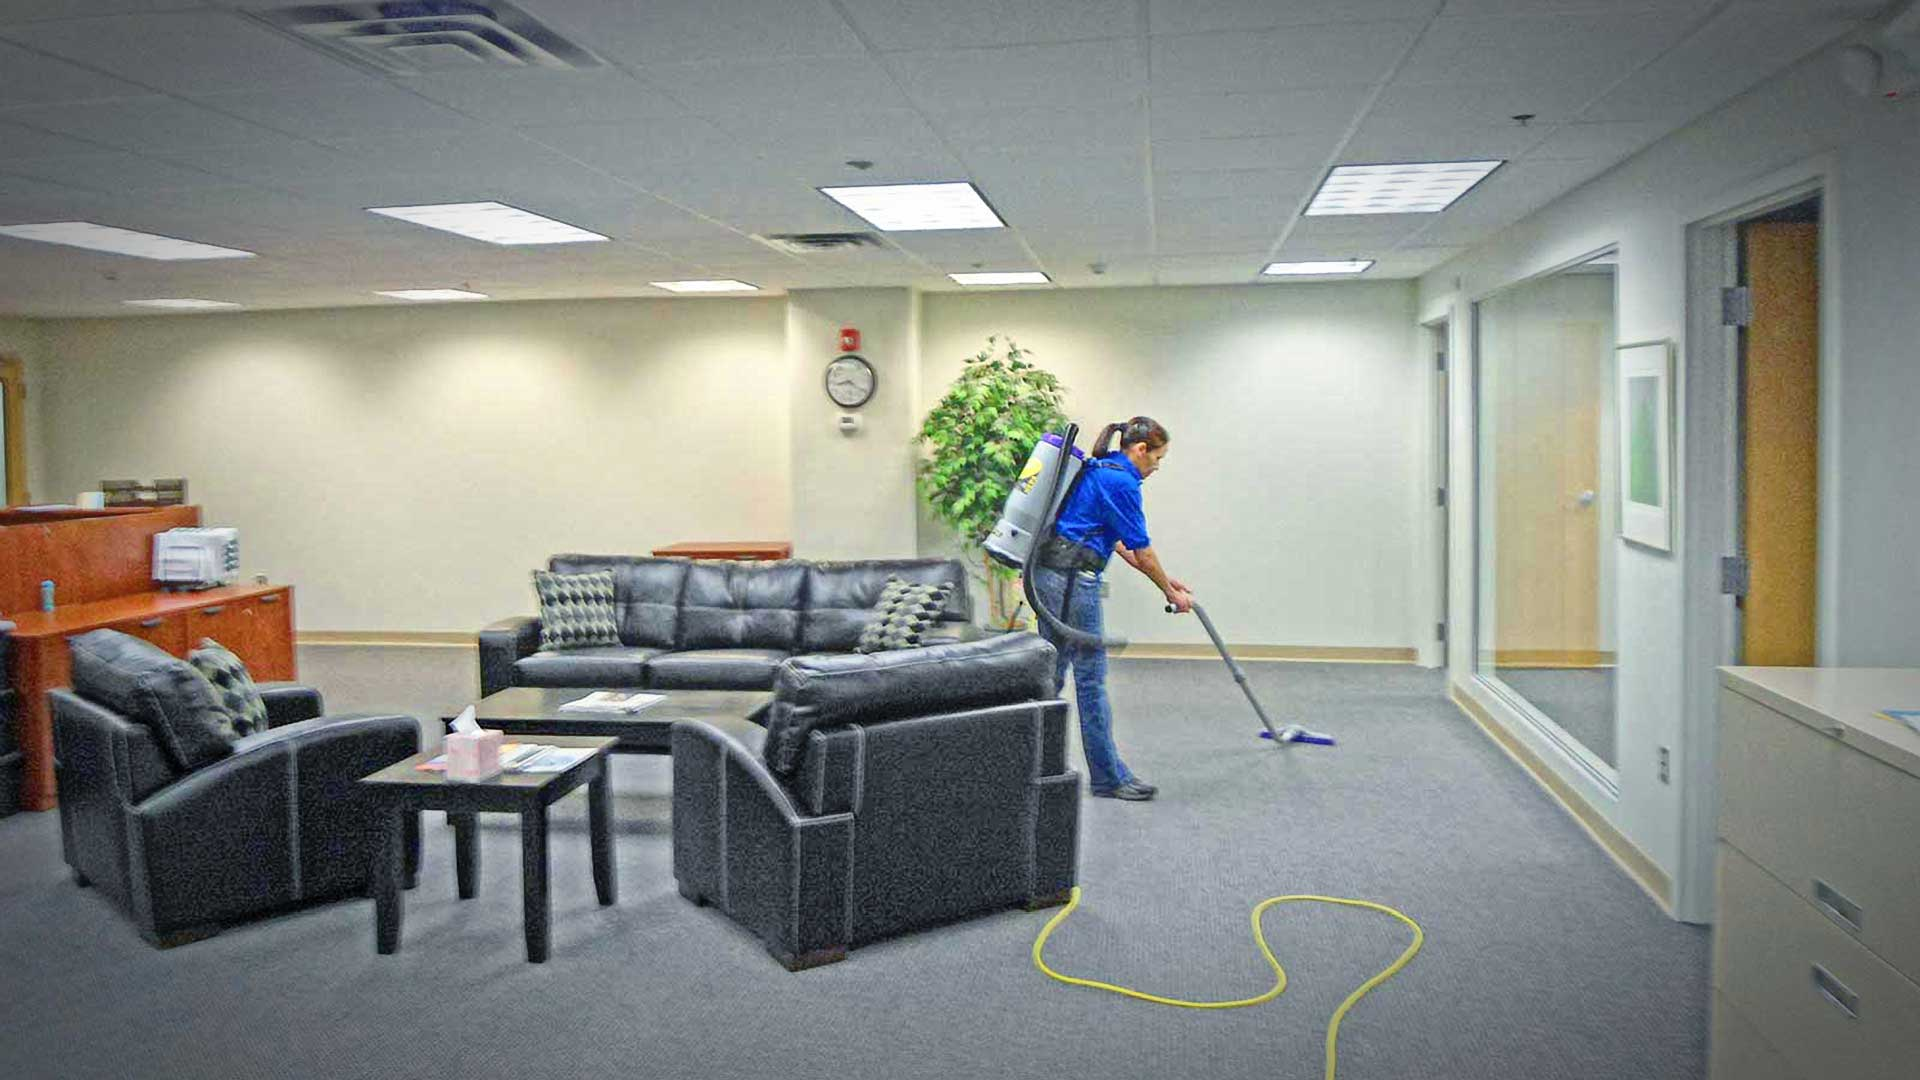 Commercial Kitchen Cleaning Companies